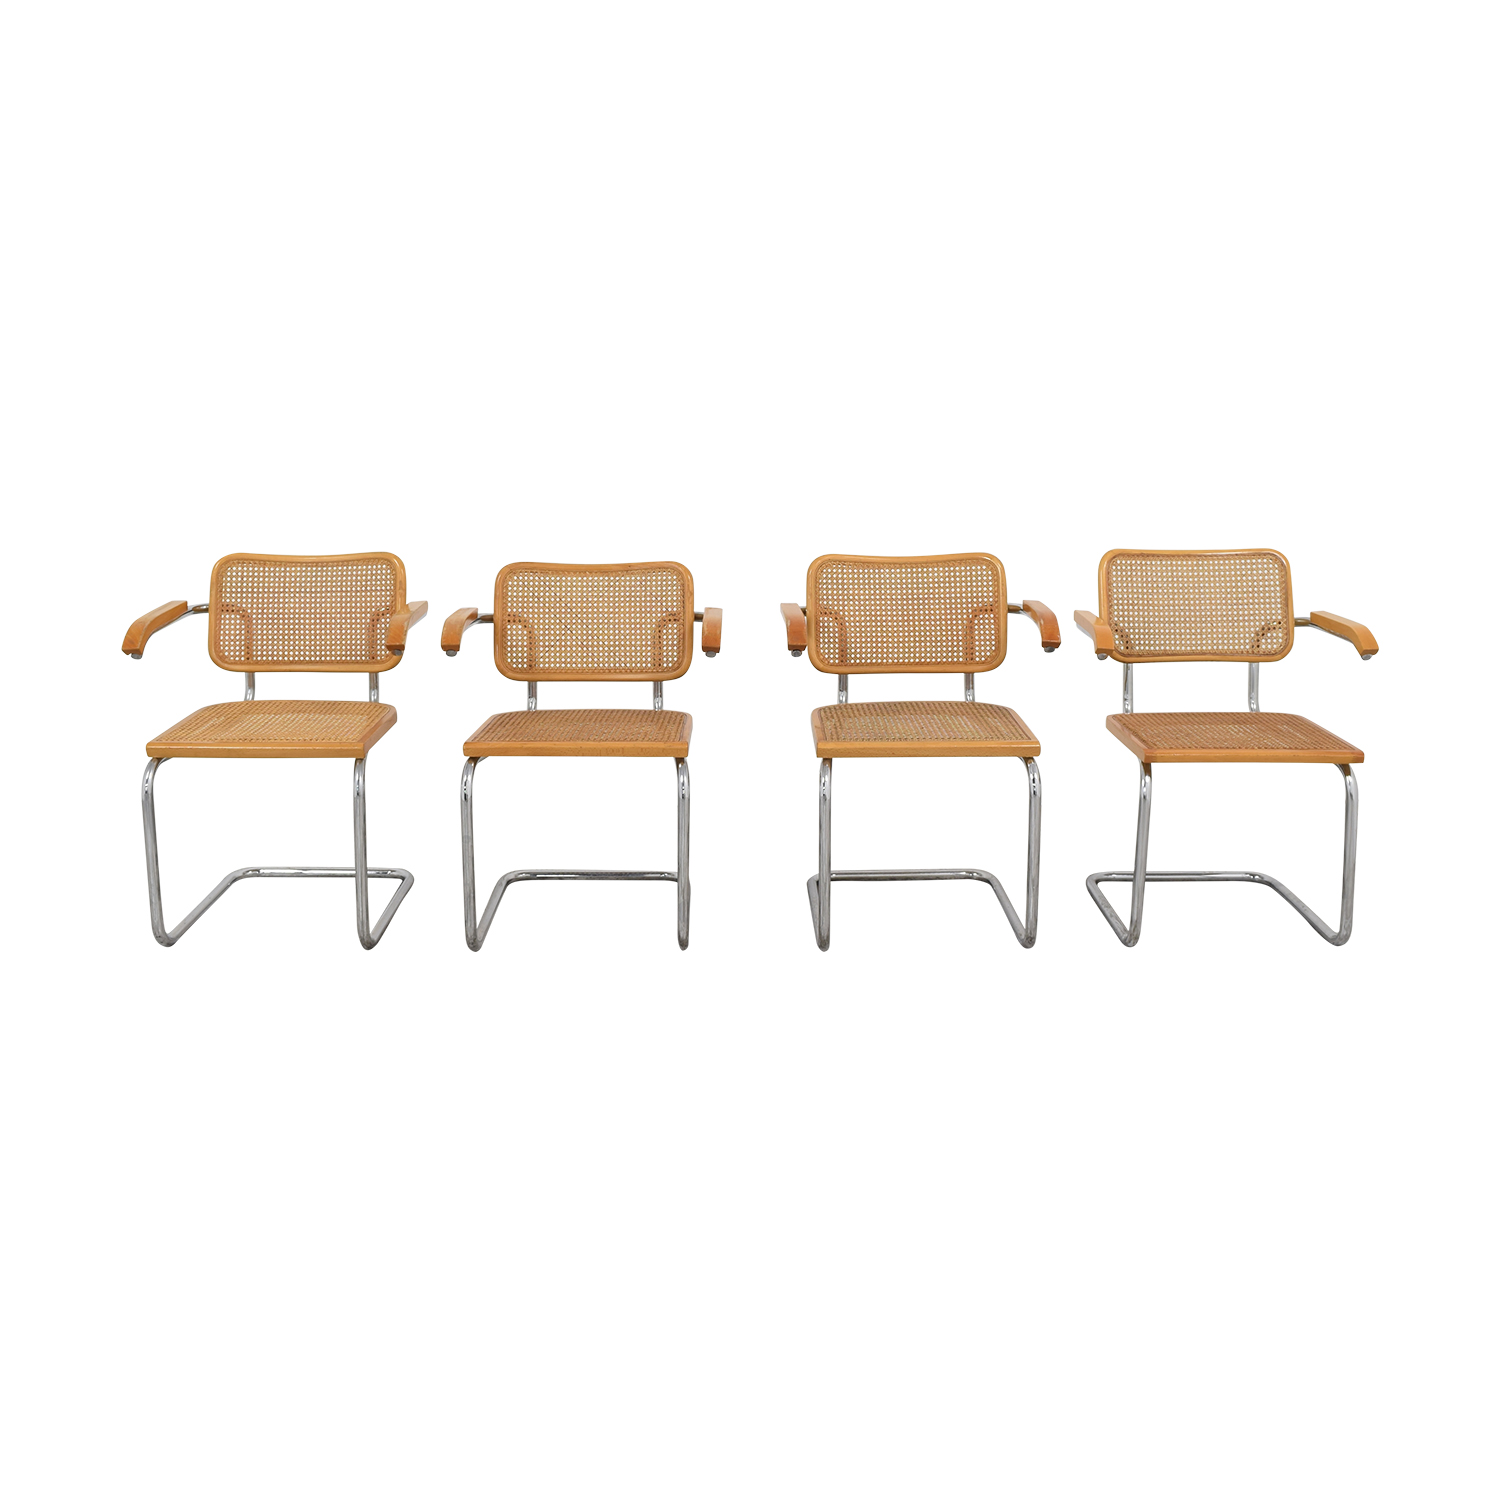 Scandinavian Designs Scandinavian Designs Bendt Dining Arm Chairs discount